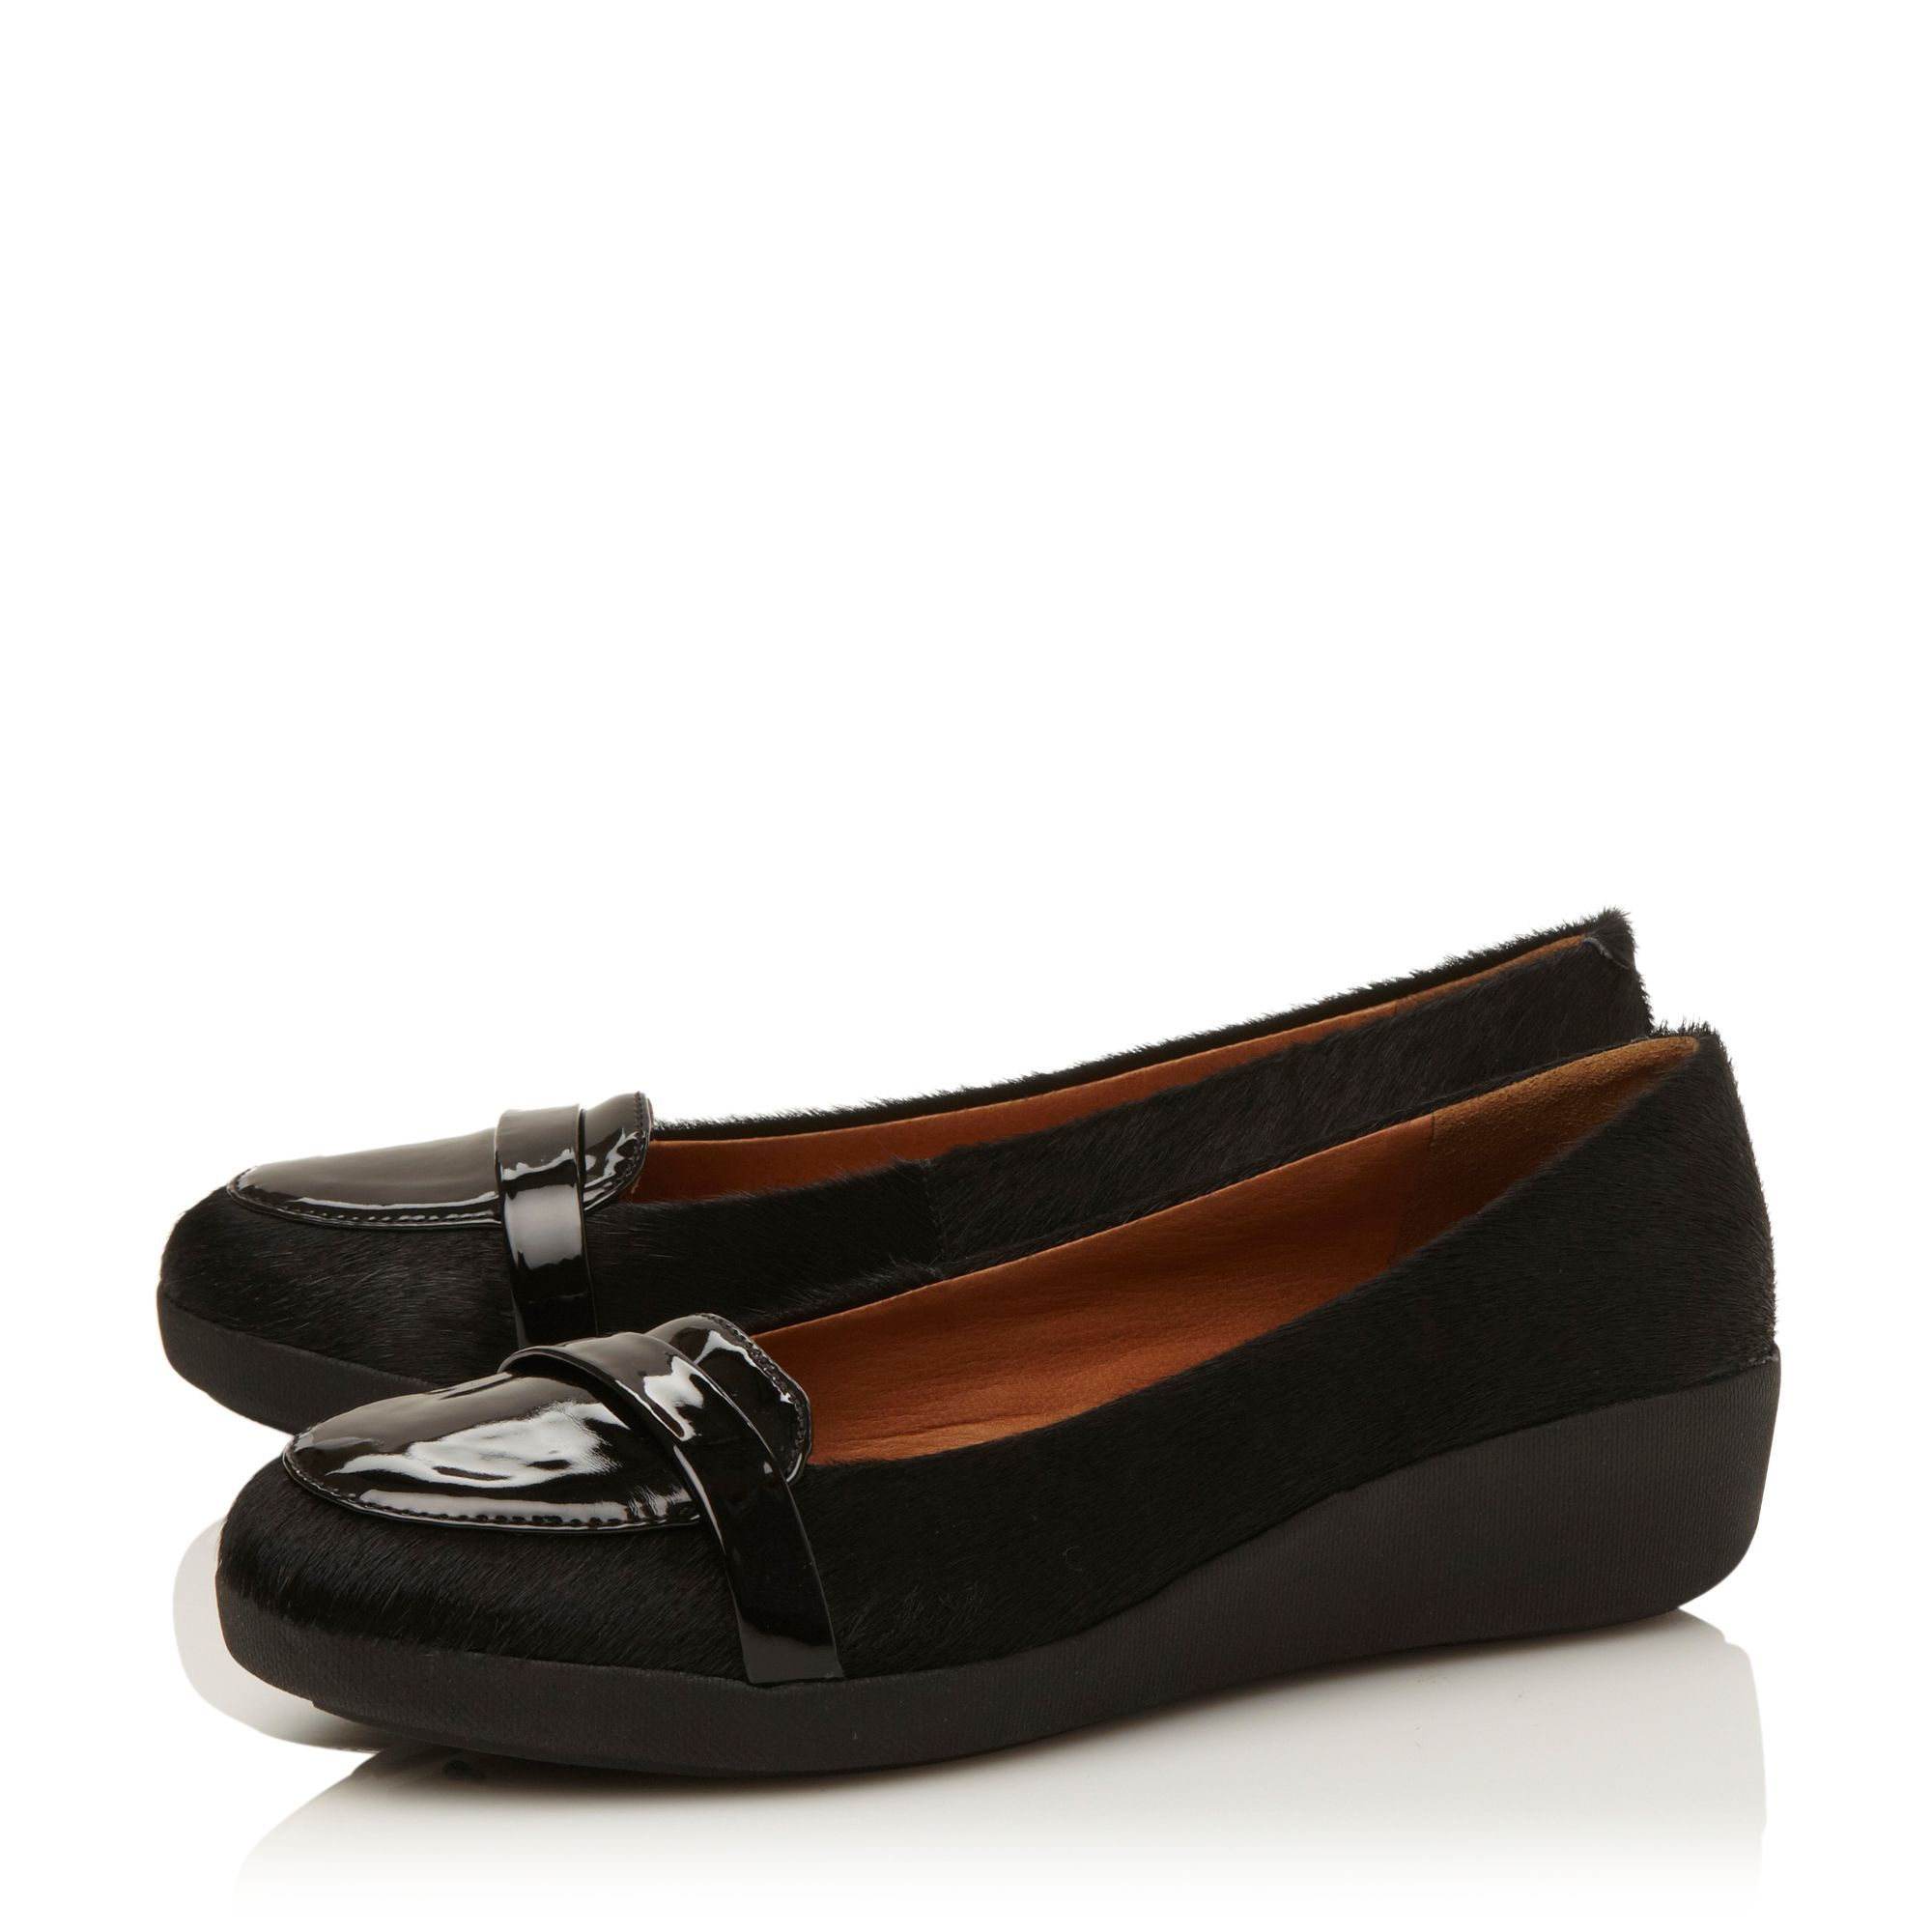 F-pop leather and pony loafers